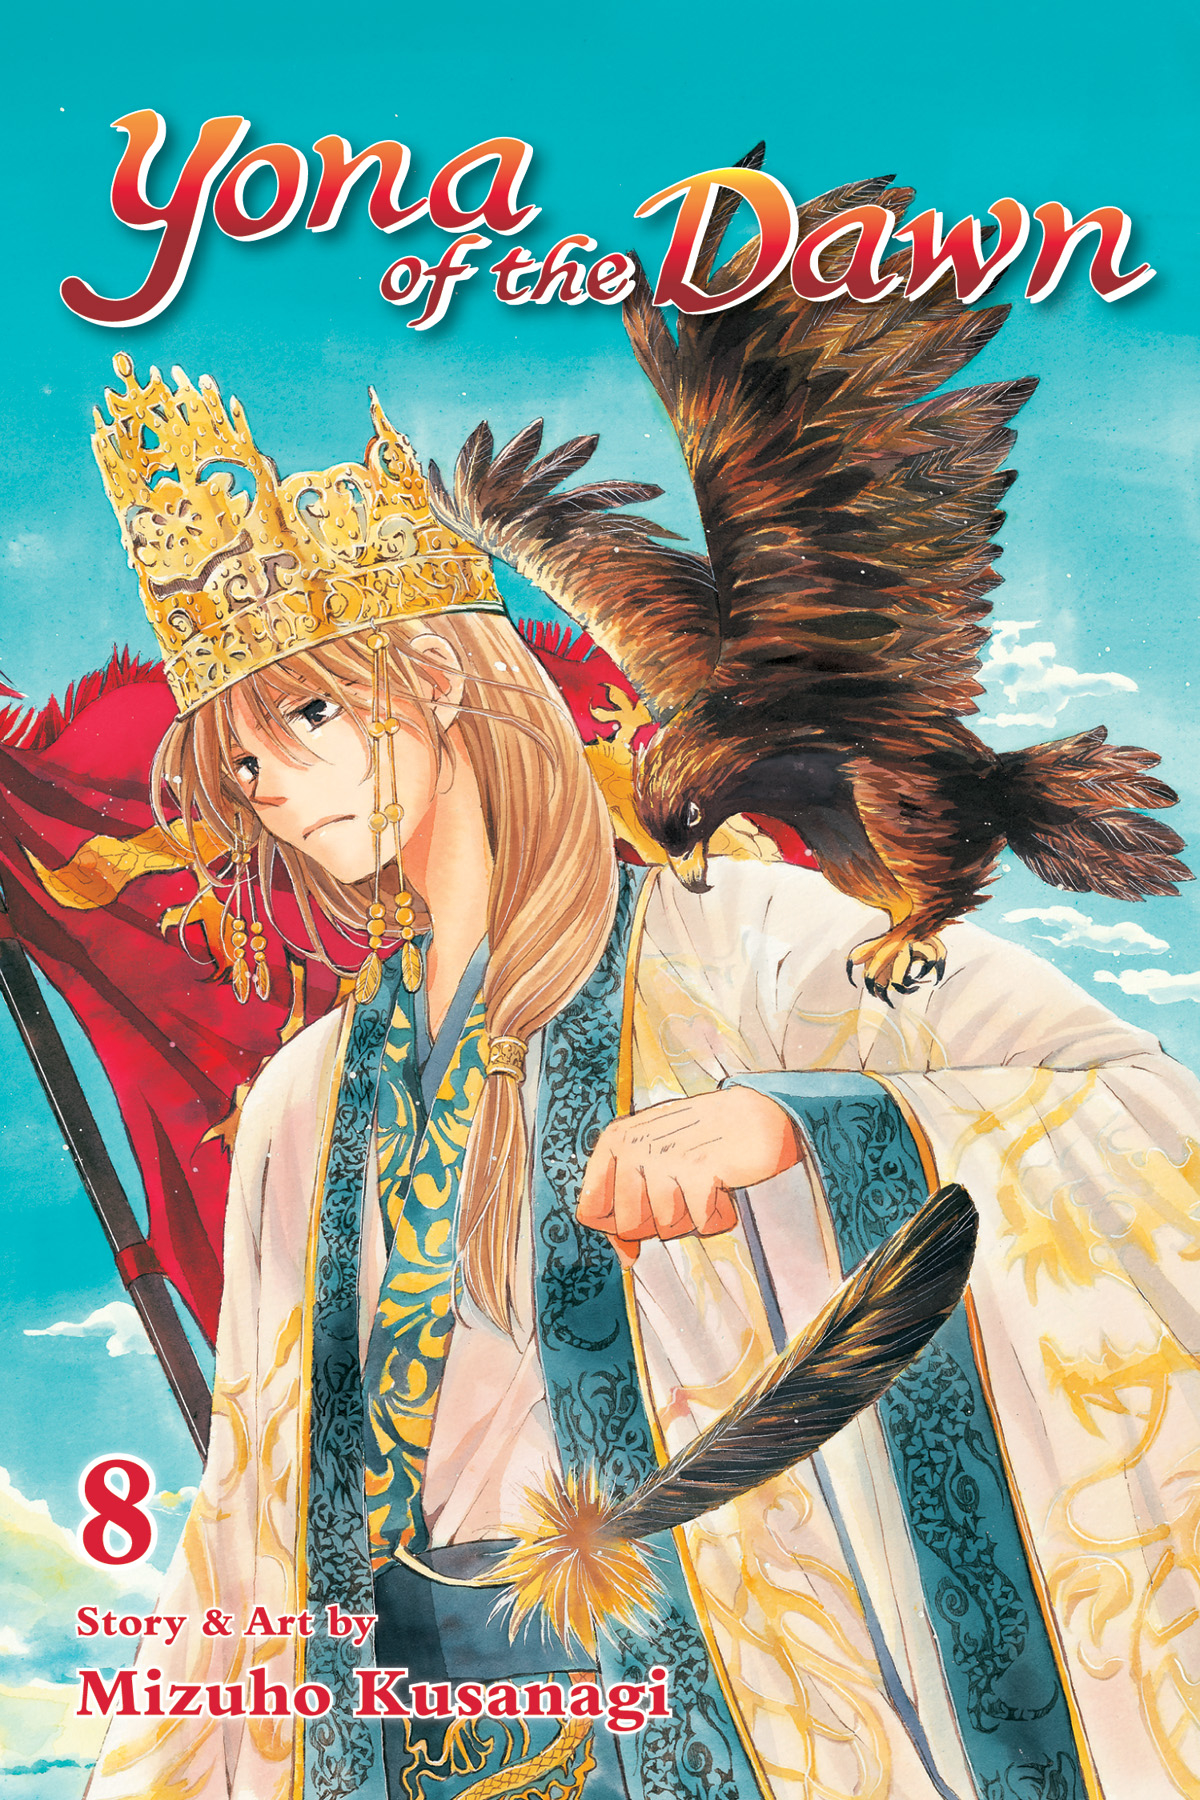 YONA OF THE DAWN GN VOL 08